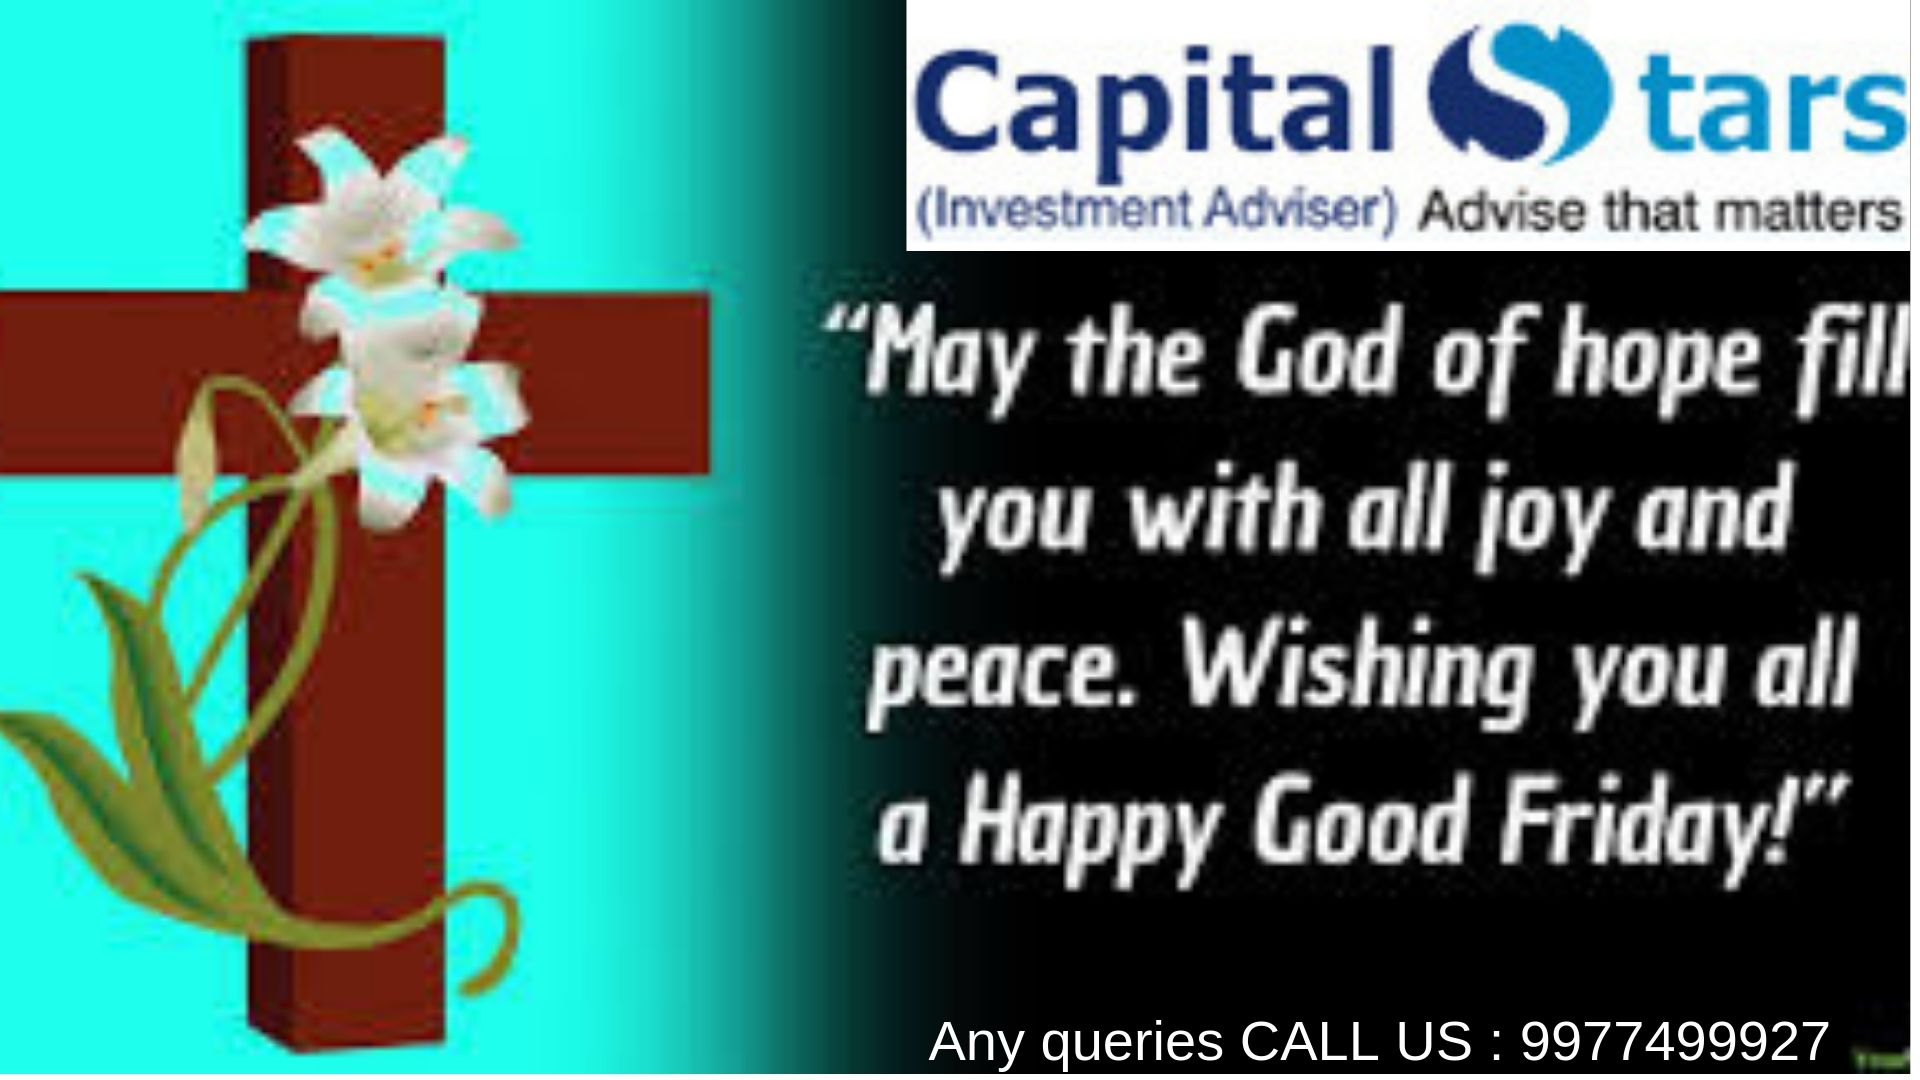 Wishing You All Happy Good Friday From Capitalstars Family Click Here To More Information Any Queries Call Us 9977499927 With Images Happy Good Friday